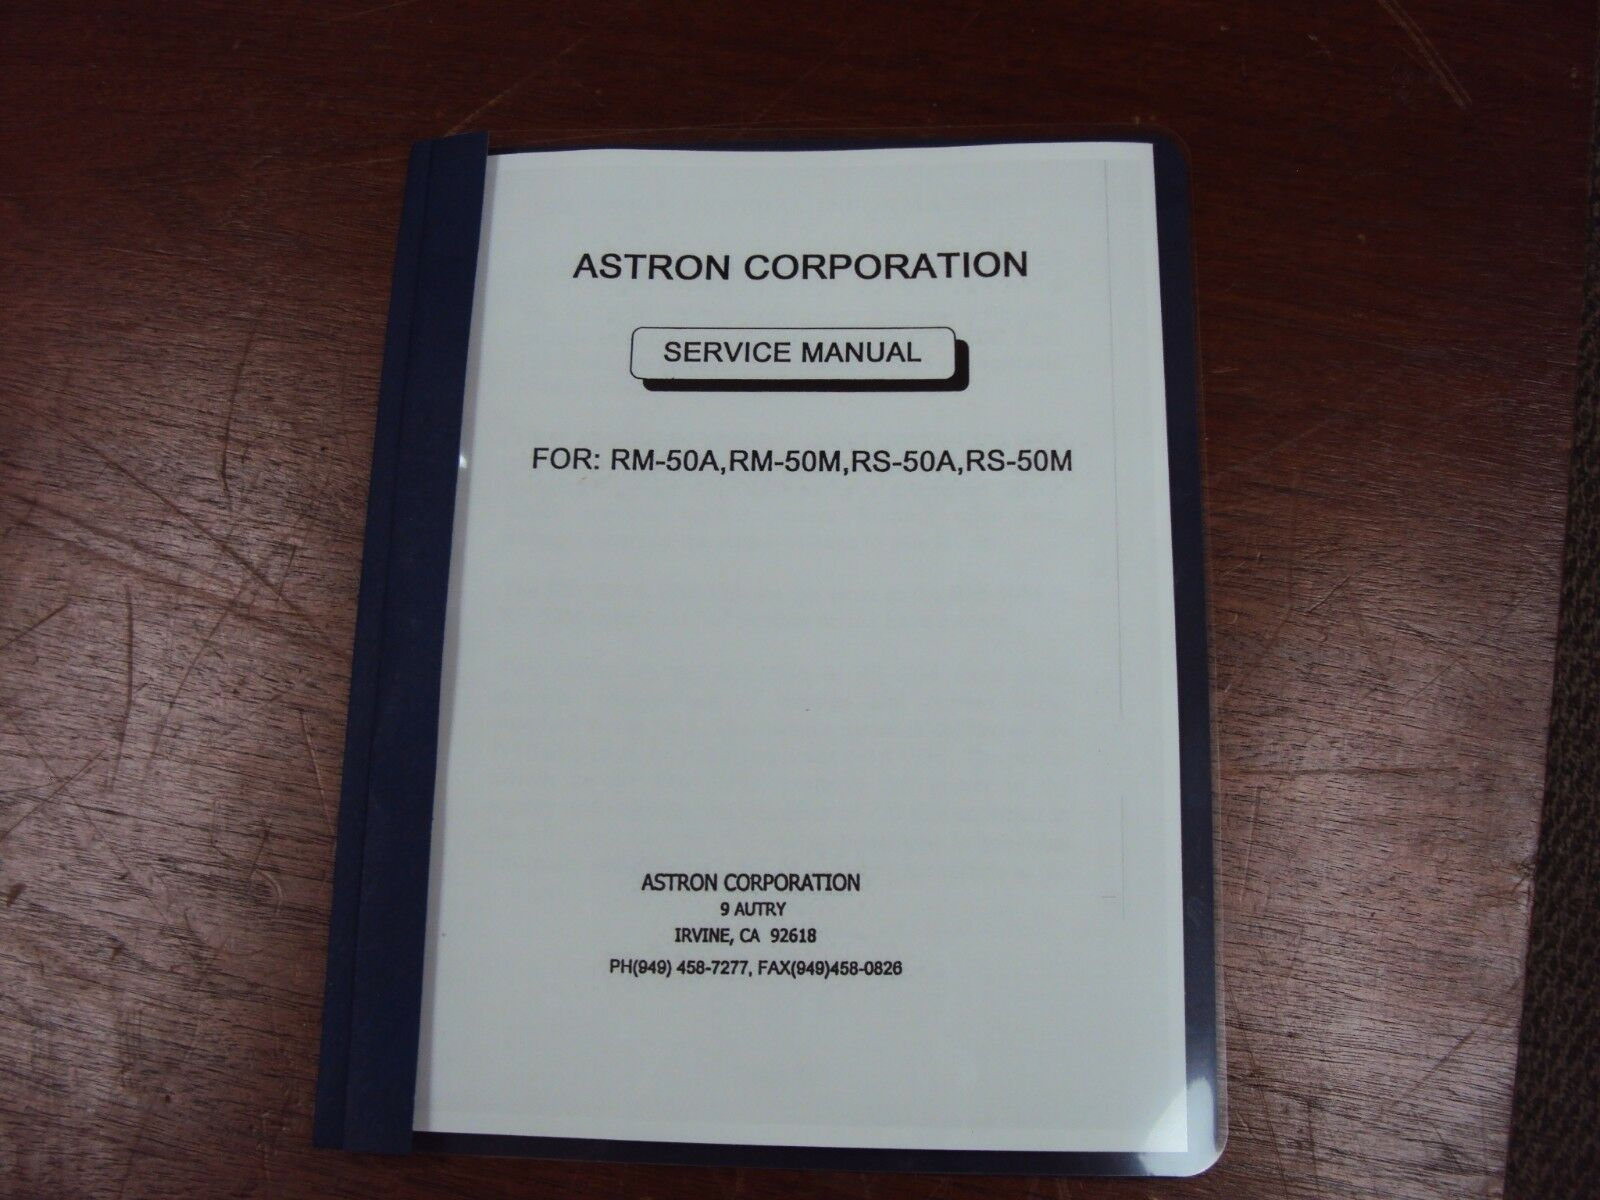 Astron RS50A 50 Amp Rs-50a Power Supply | eBay on panasonic schematic diagram, adc schematic diagram, honda schematic diagram, pioneer schematic diagram, stihl schematic diagram, toshiba schematic diagram, solar schematic diagram, sanyo schematic diagram, hp schematic diagram, samsung schematic diagram, sony schematic diagram, yamaha schematic diagram, toro schematic diagram, honeywell schematic diagram, daiwa schematic diagram, rca schematic diagram, cub cadet schematic diagram, hitachi schematic diagram, motorola schematic diagram,